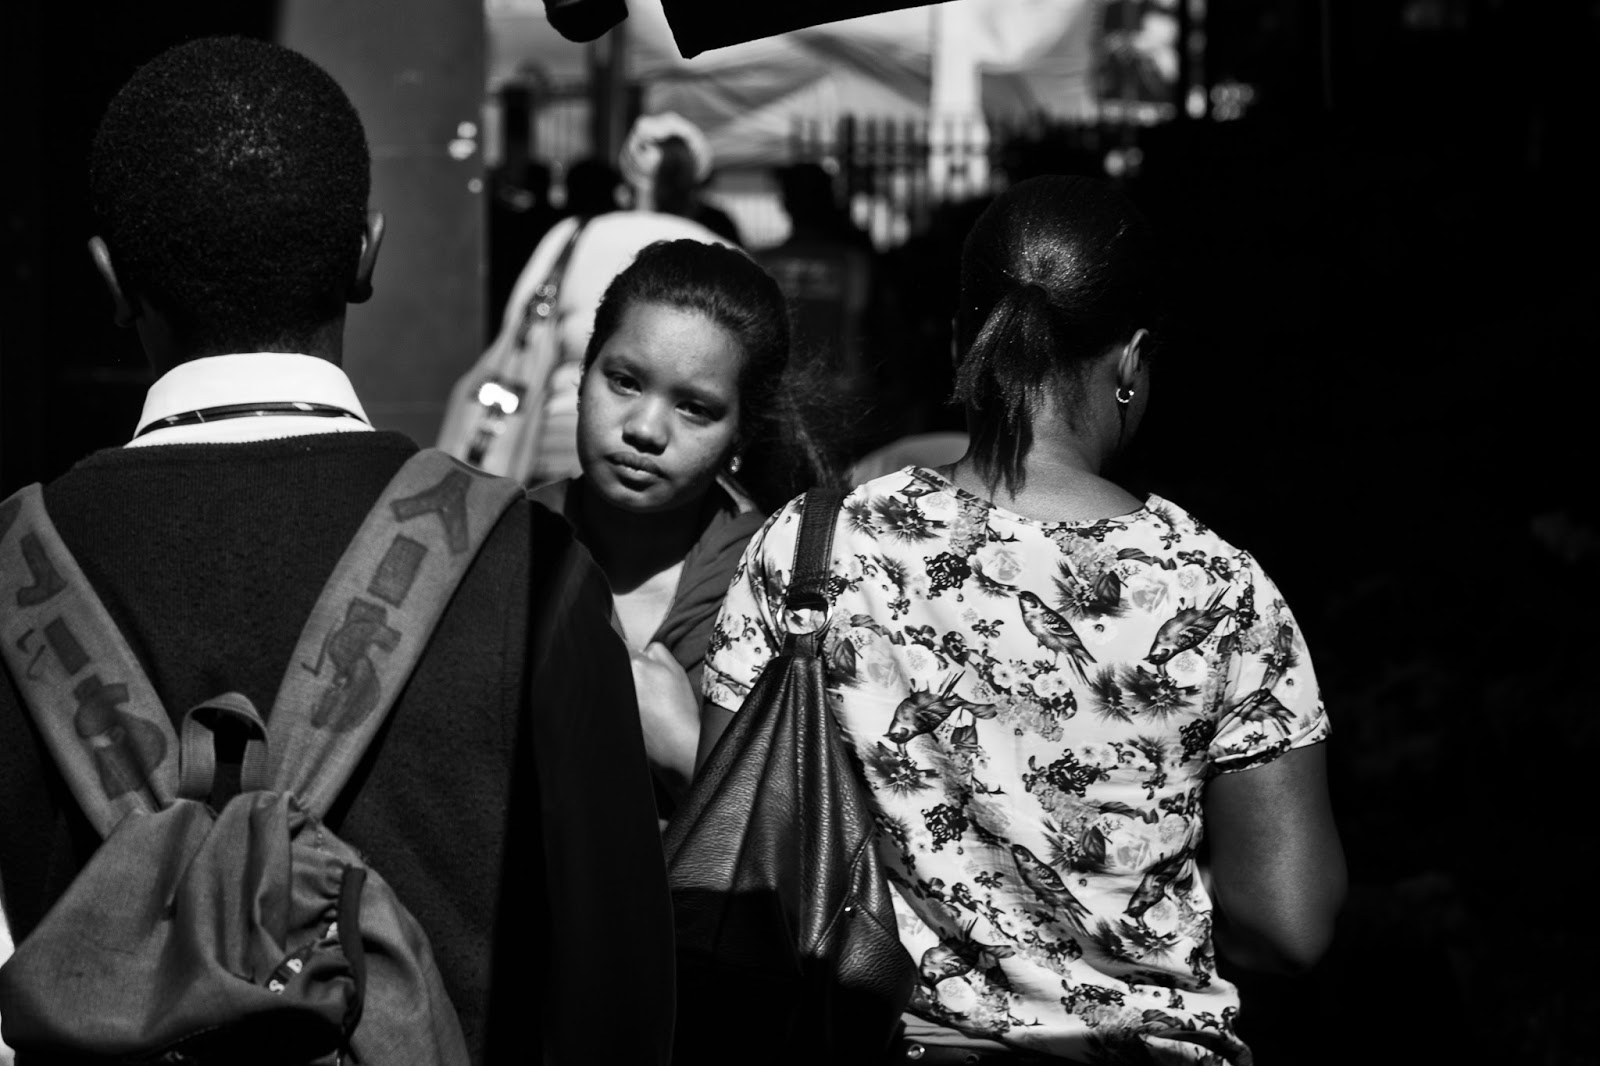 A woman walking in Cape Town - this photo expresses a sense of loneliness perhaps